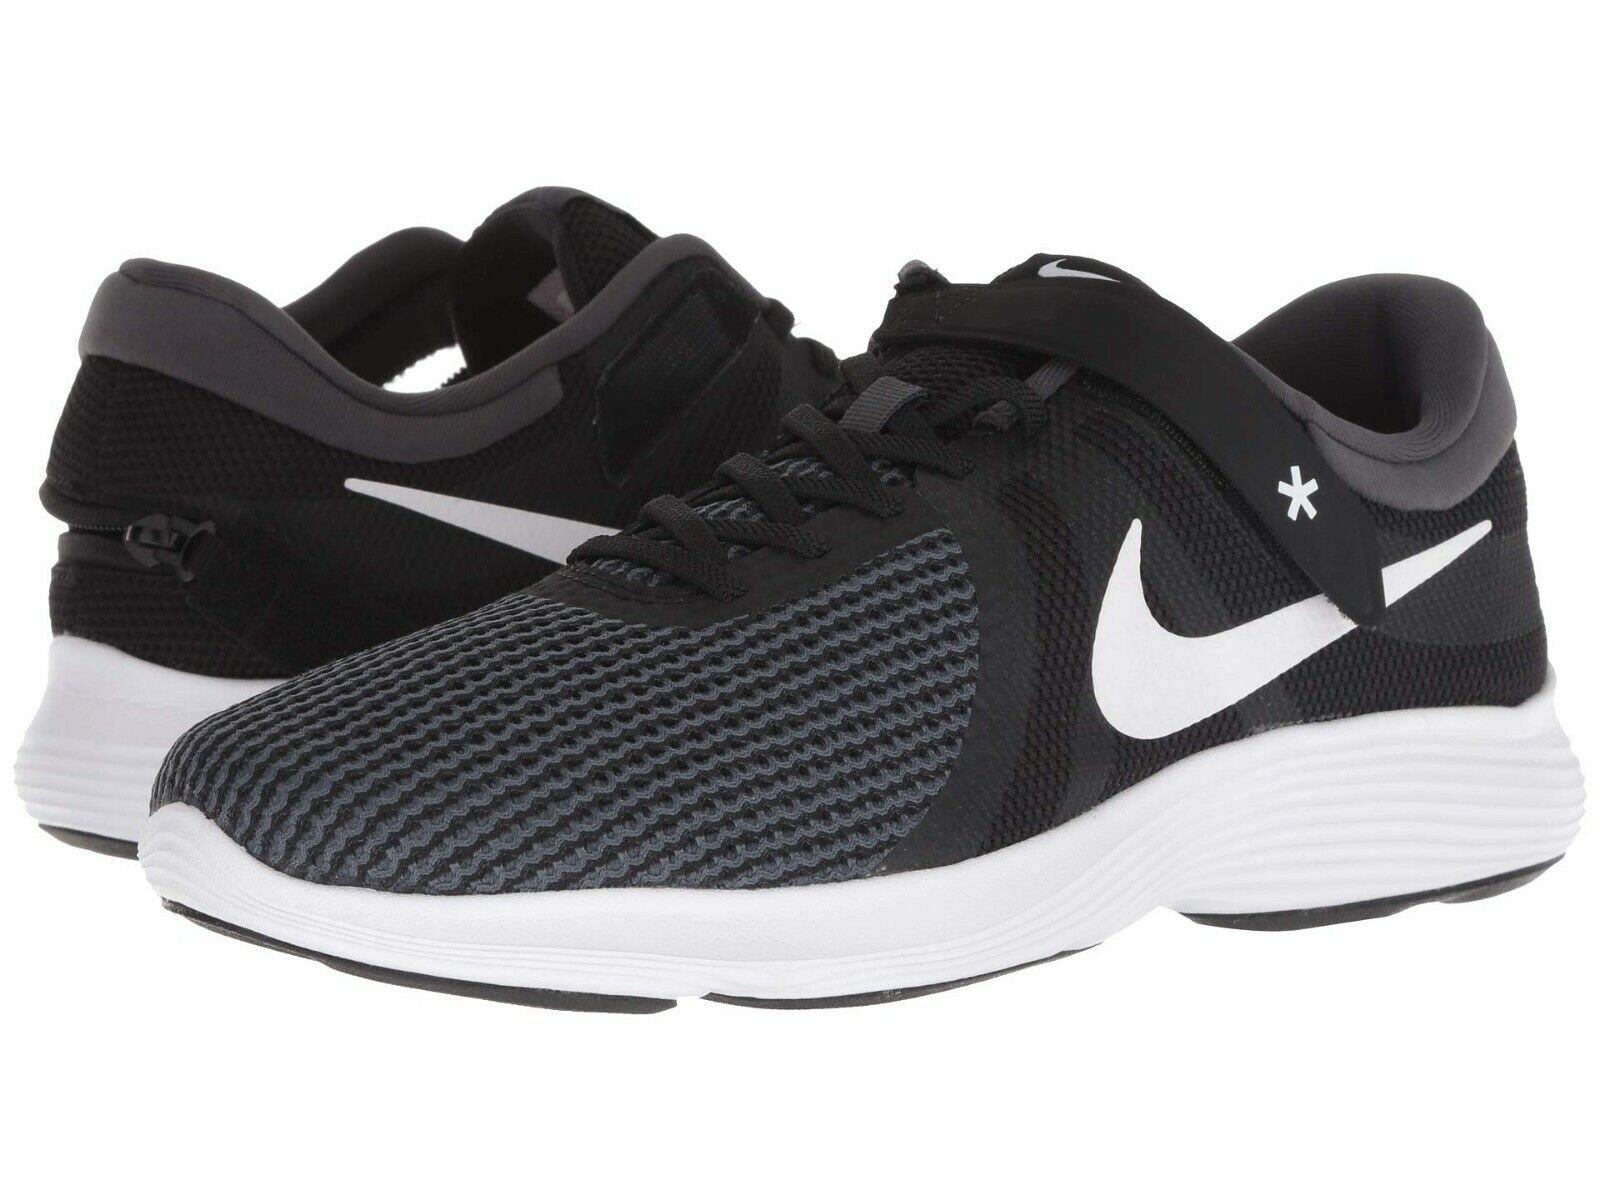 Nike REVOLUTION 4 FLYEASE (4E) Mens Black White-Anthracite AA1730-001 shoes